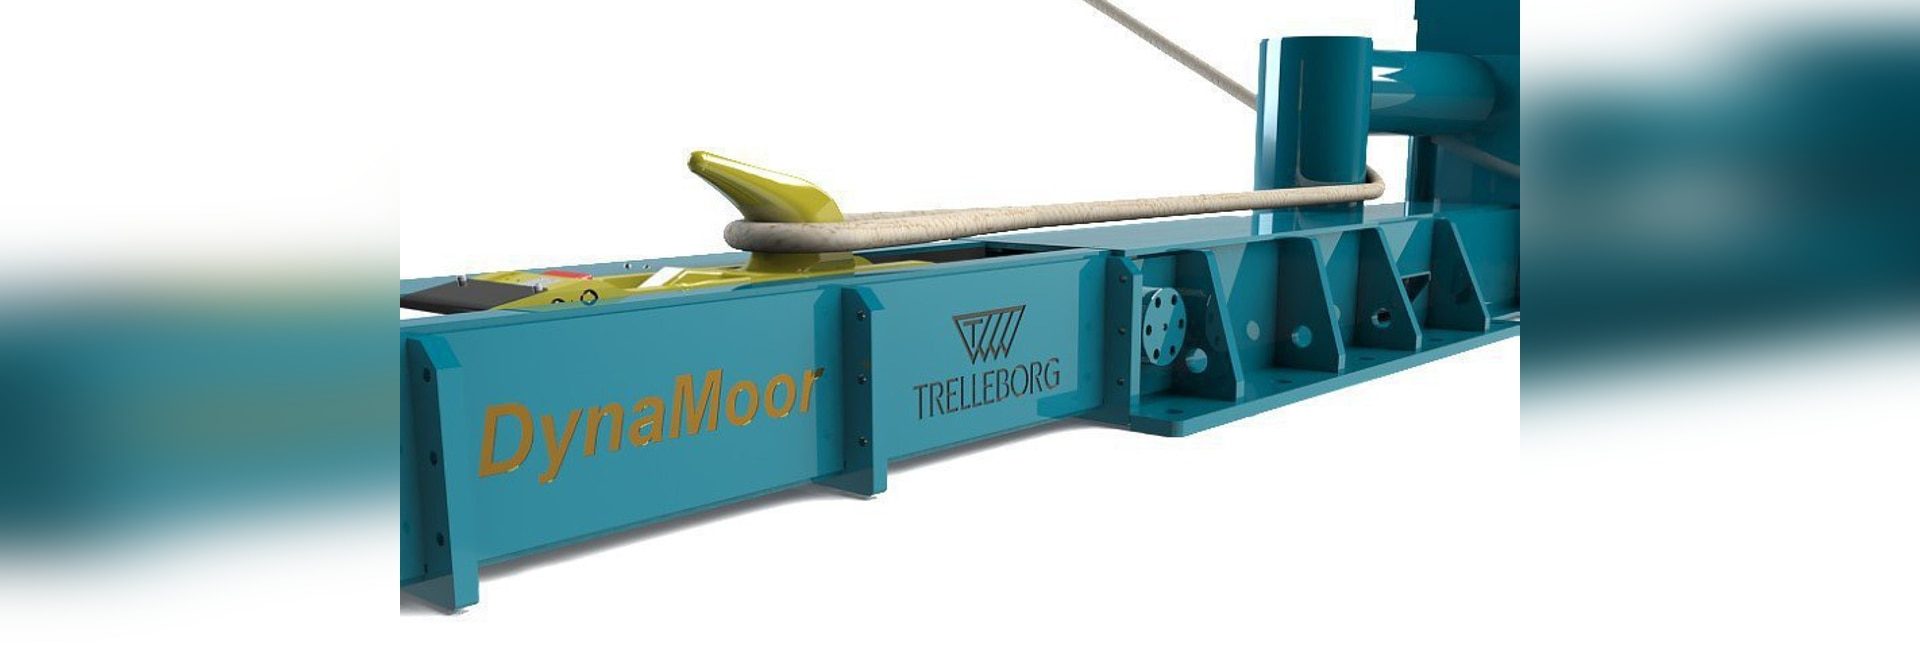 DynaMoor maintains constant tension in mooring lines to dampen vessel movements. Image: Trelleborg